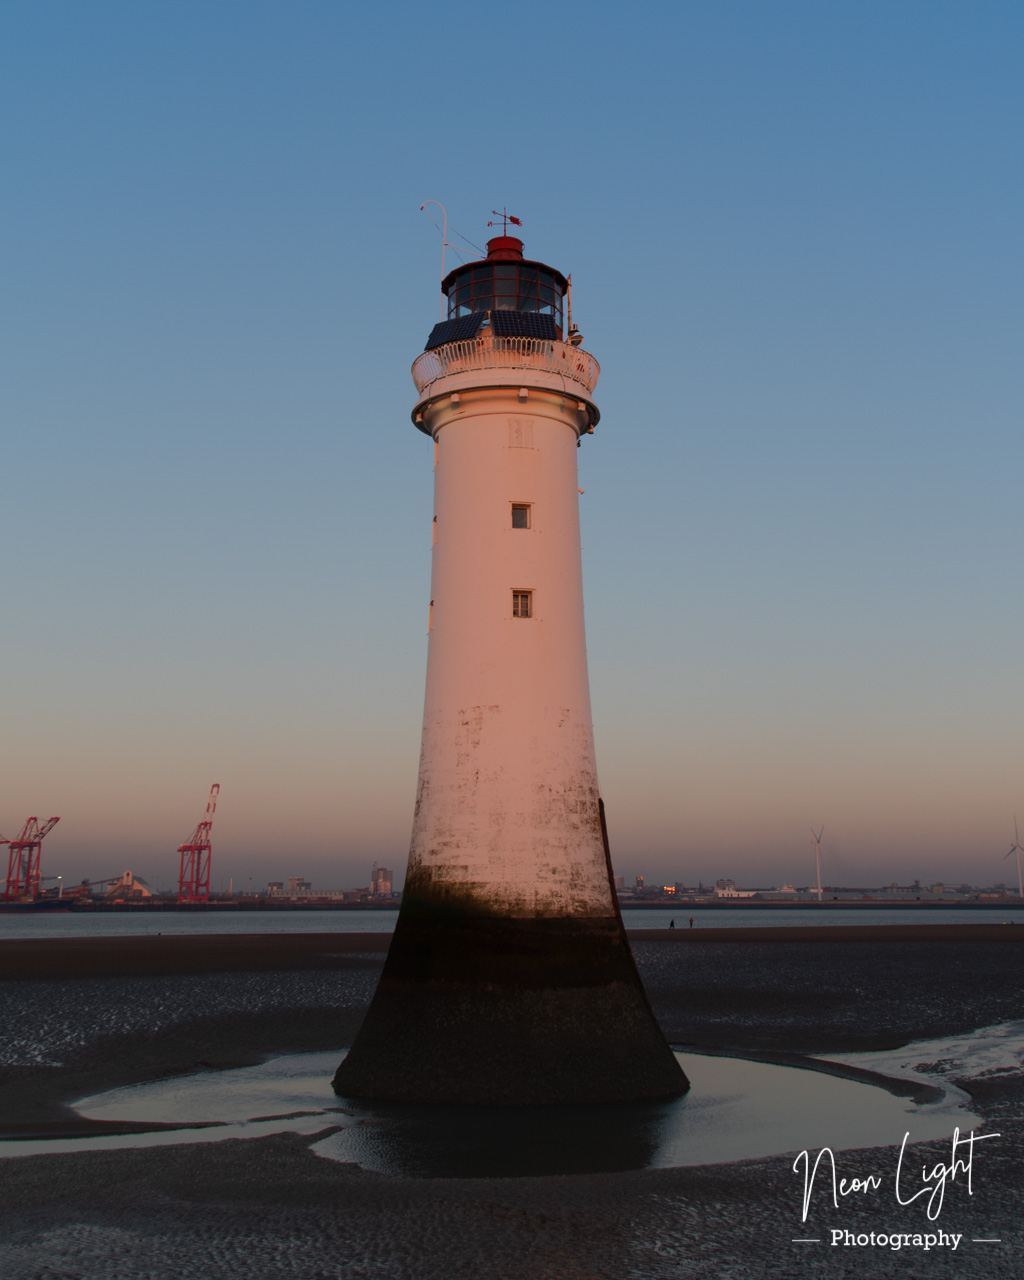 The Lighthouse Watched Over